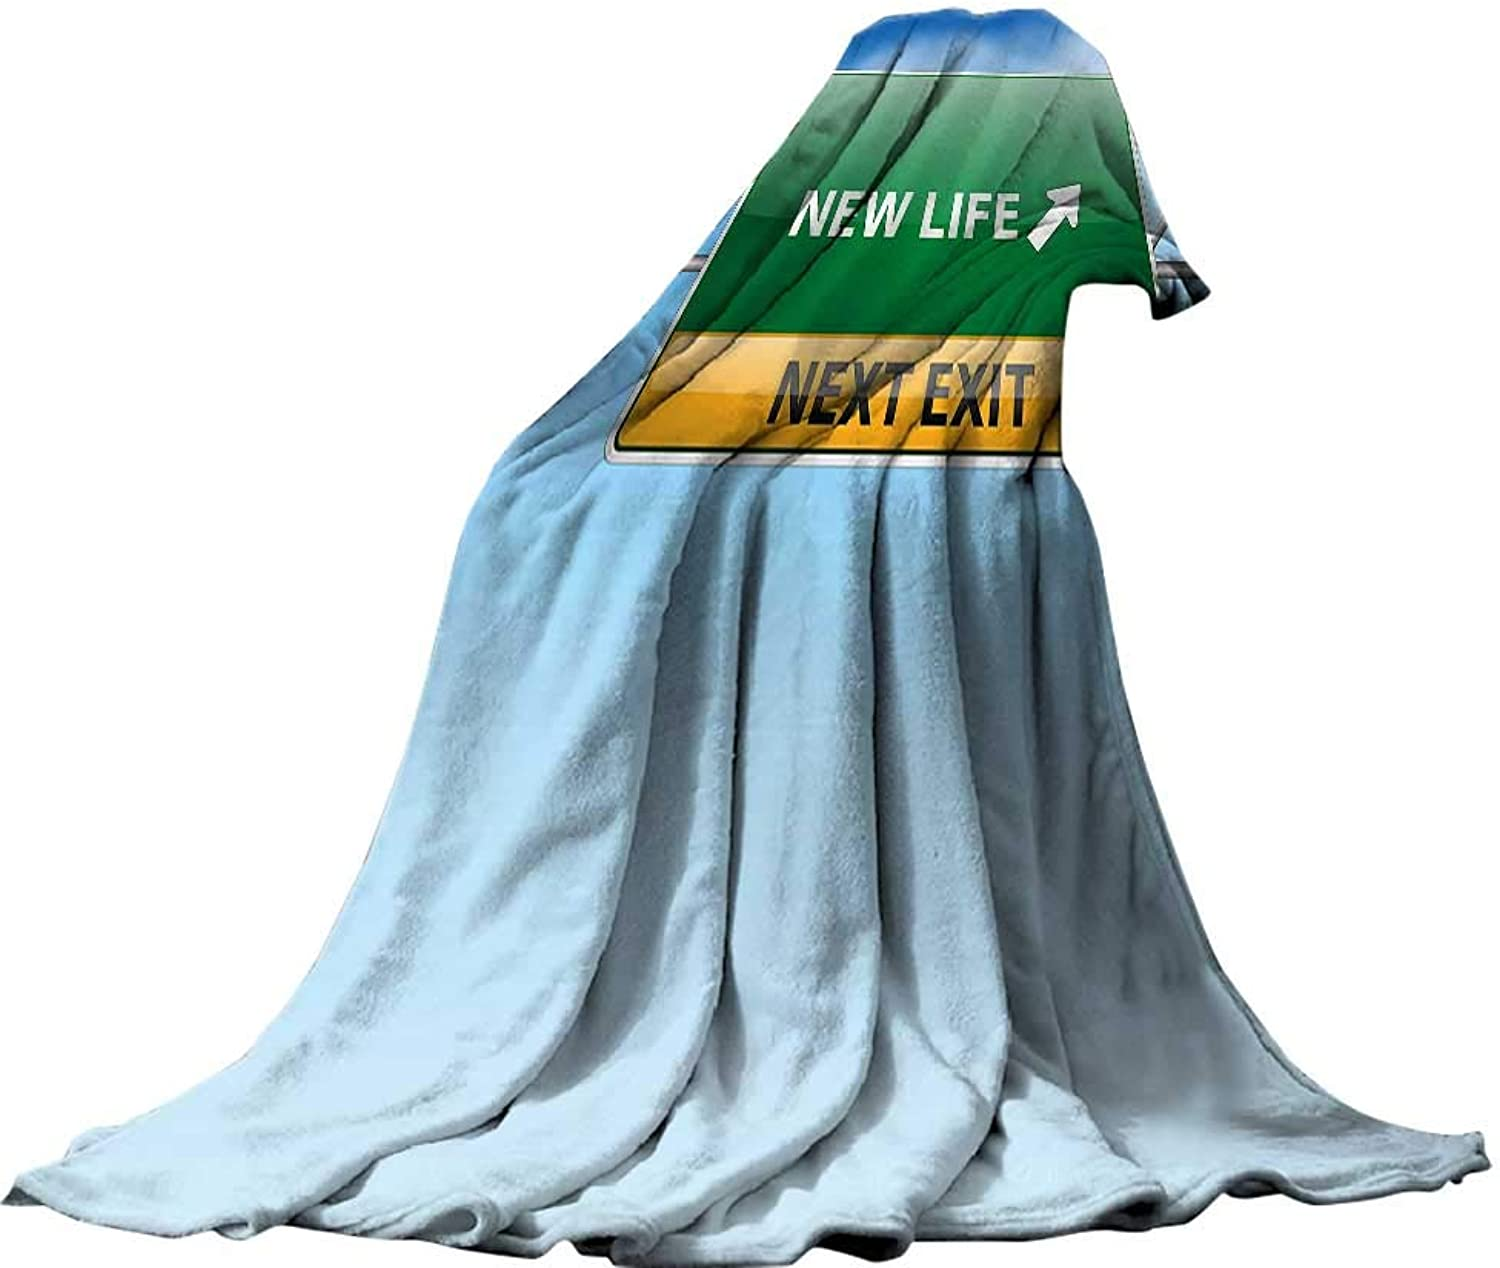 QINYAN-Home Lightweight Blanket (70 x60 ) Summer Quilt Comforter Going Away Party Decorations Life Concept with Road Sign on bluee Sky Next Exit bluee Green Yellow.